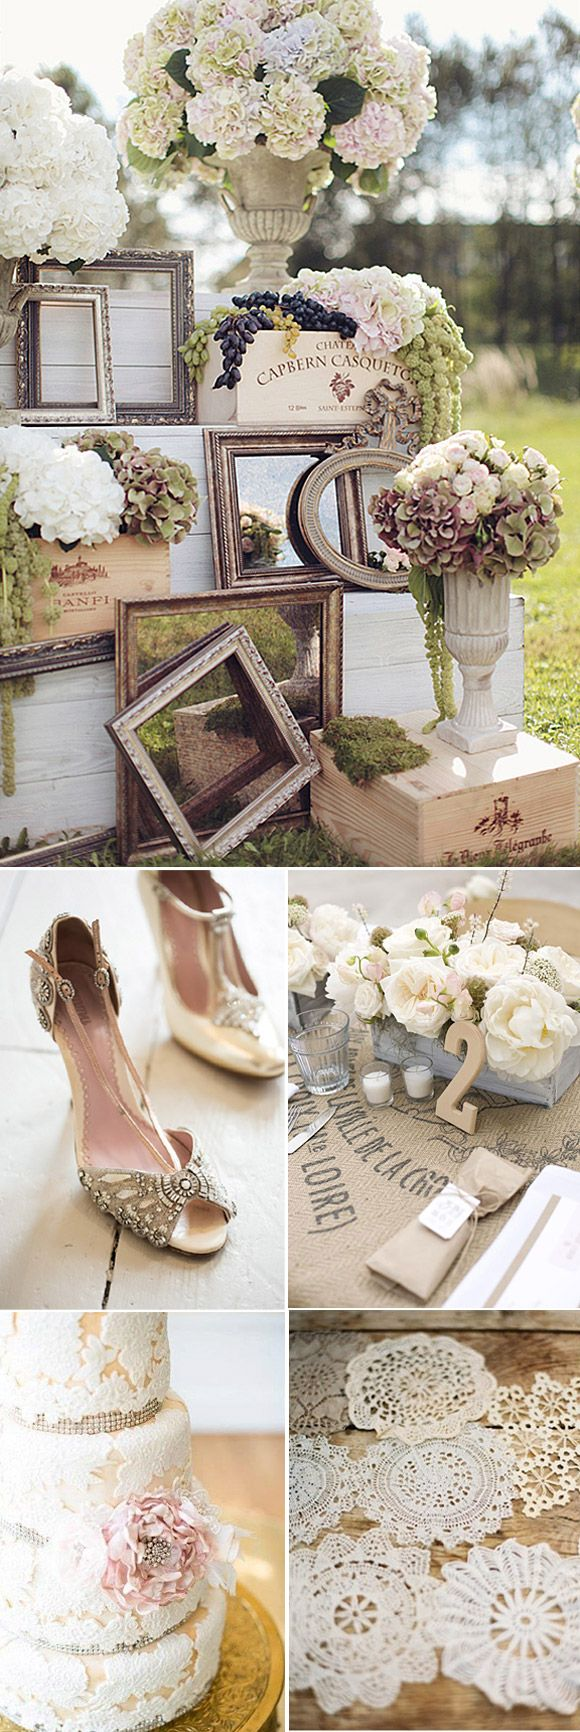 48 best cuadros vintage images on pinterest - Cuadros shabby chic ...